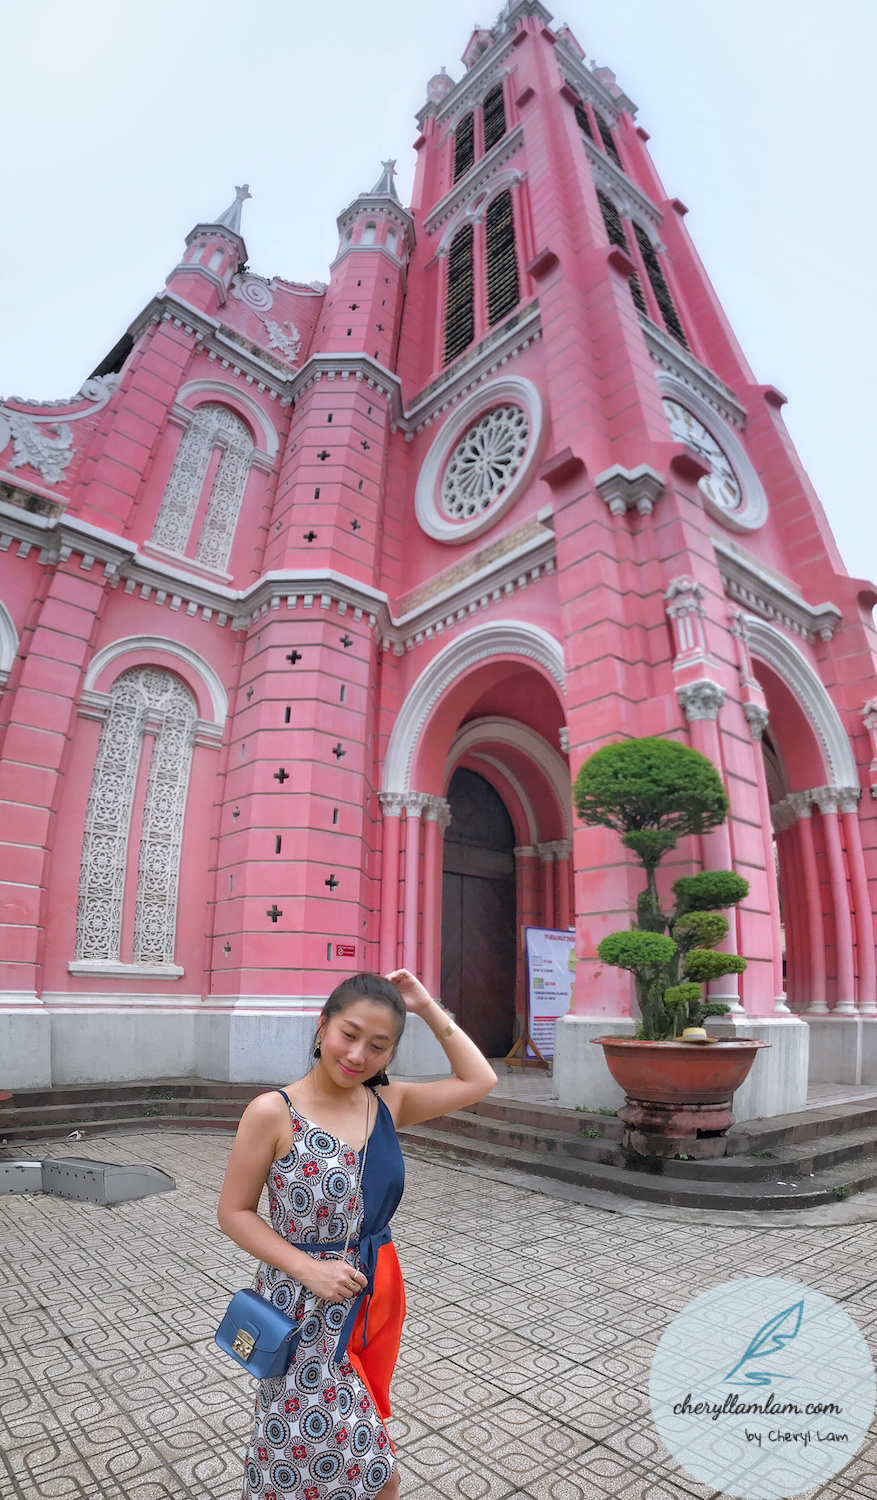 A lovely pink church worth visiting in Saigon - Tan Dinh Church